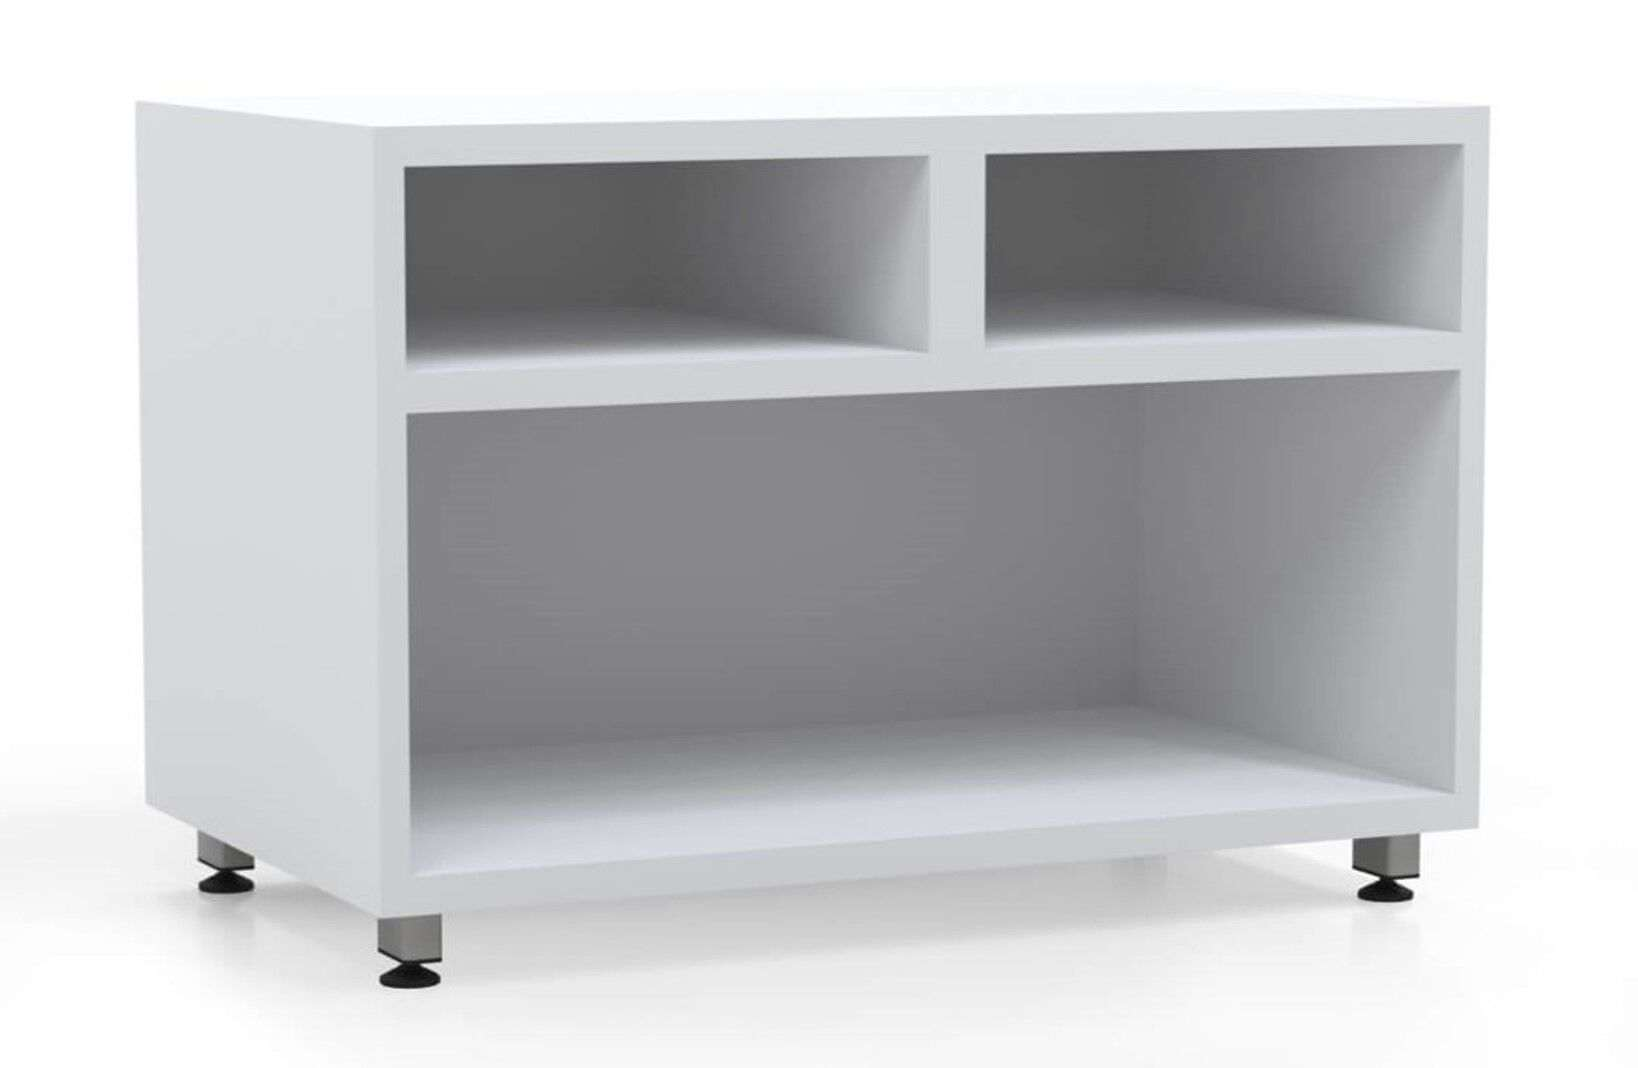 L shaped computer table open storage container white_preview